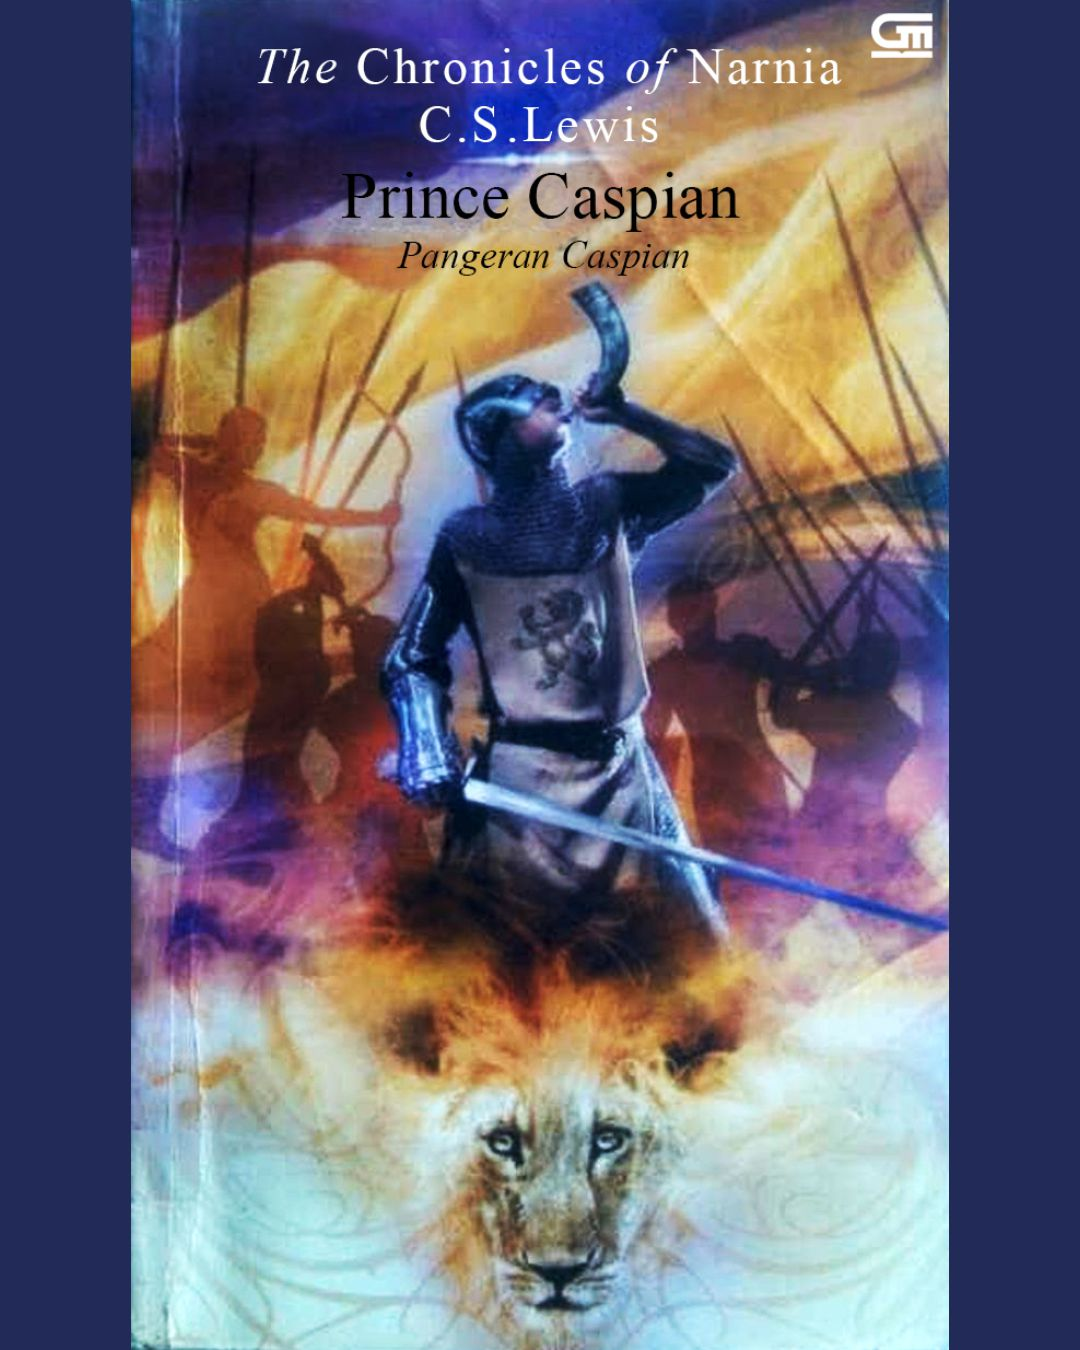 The Chronicles of Narnia: Prince Caspian (Pangeran Caspian)